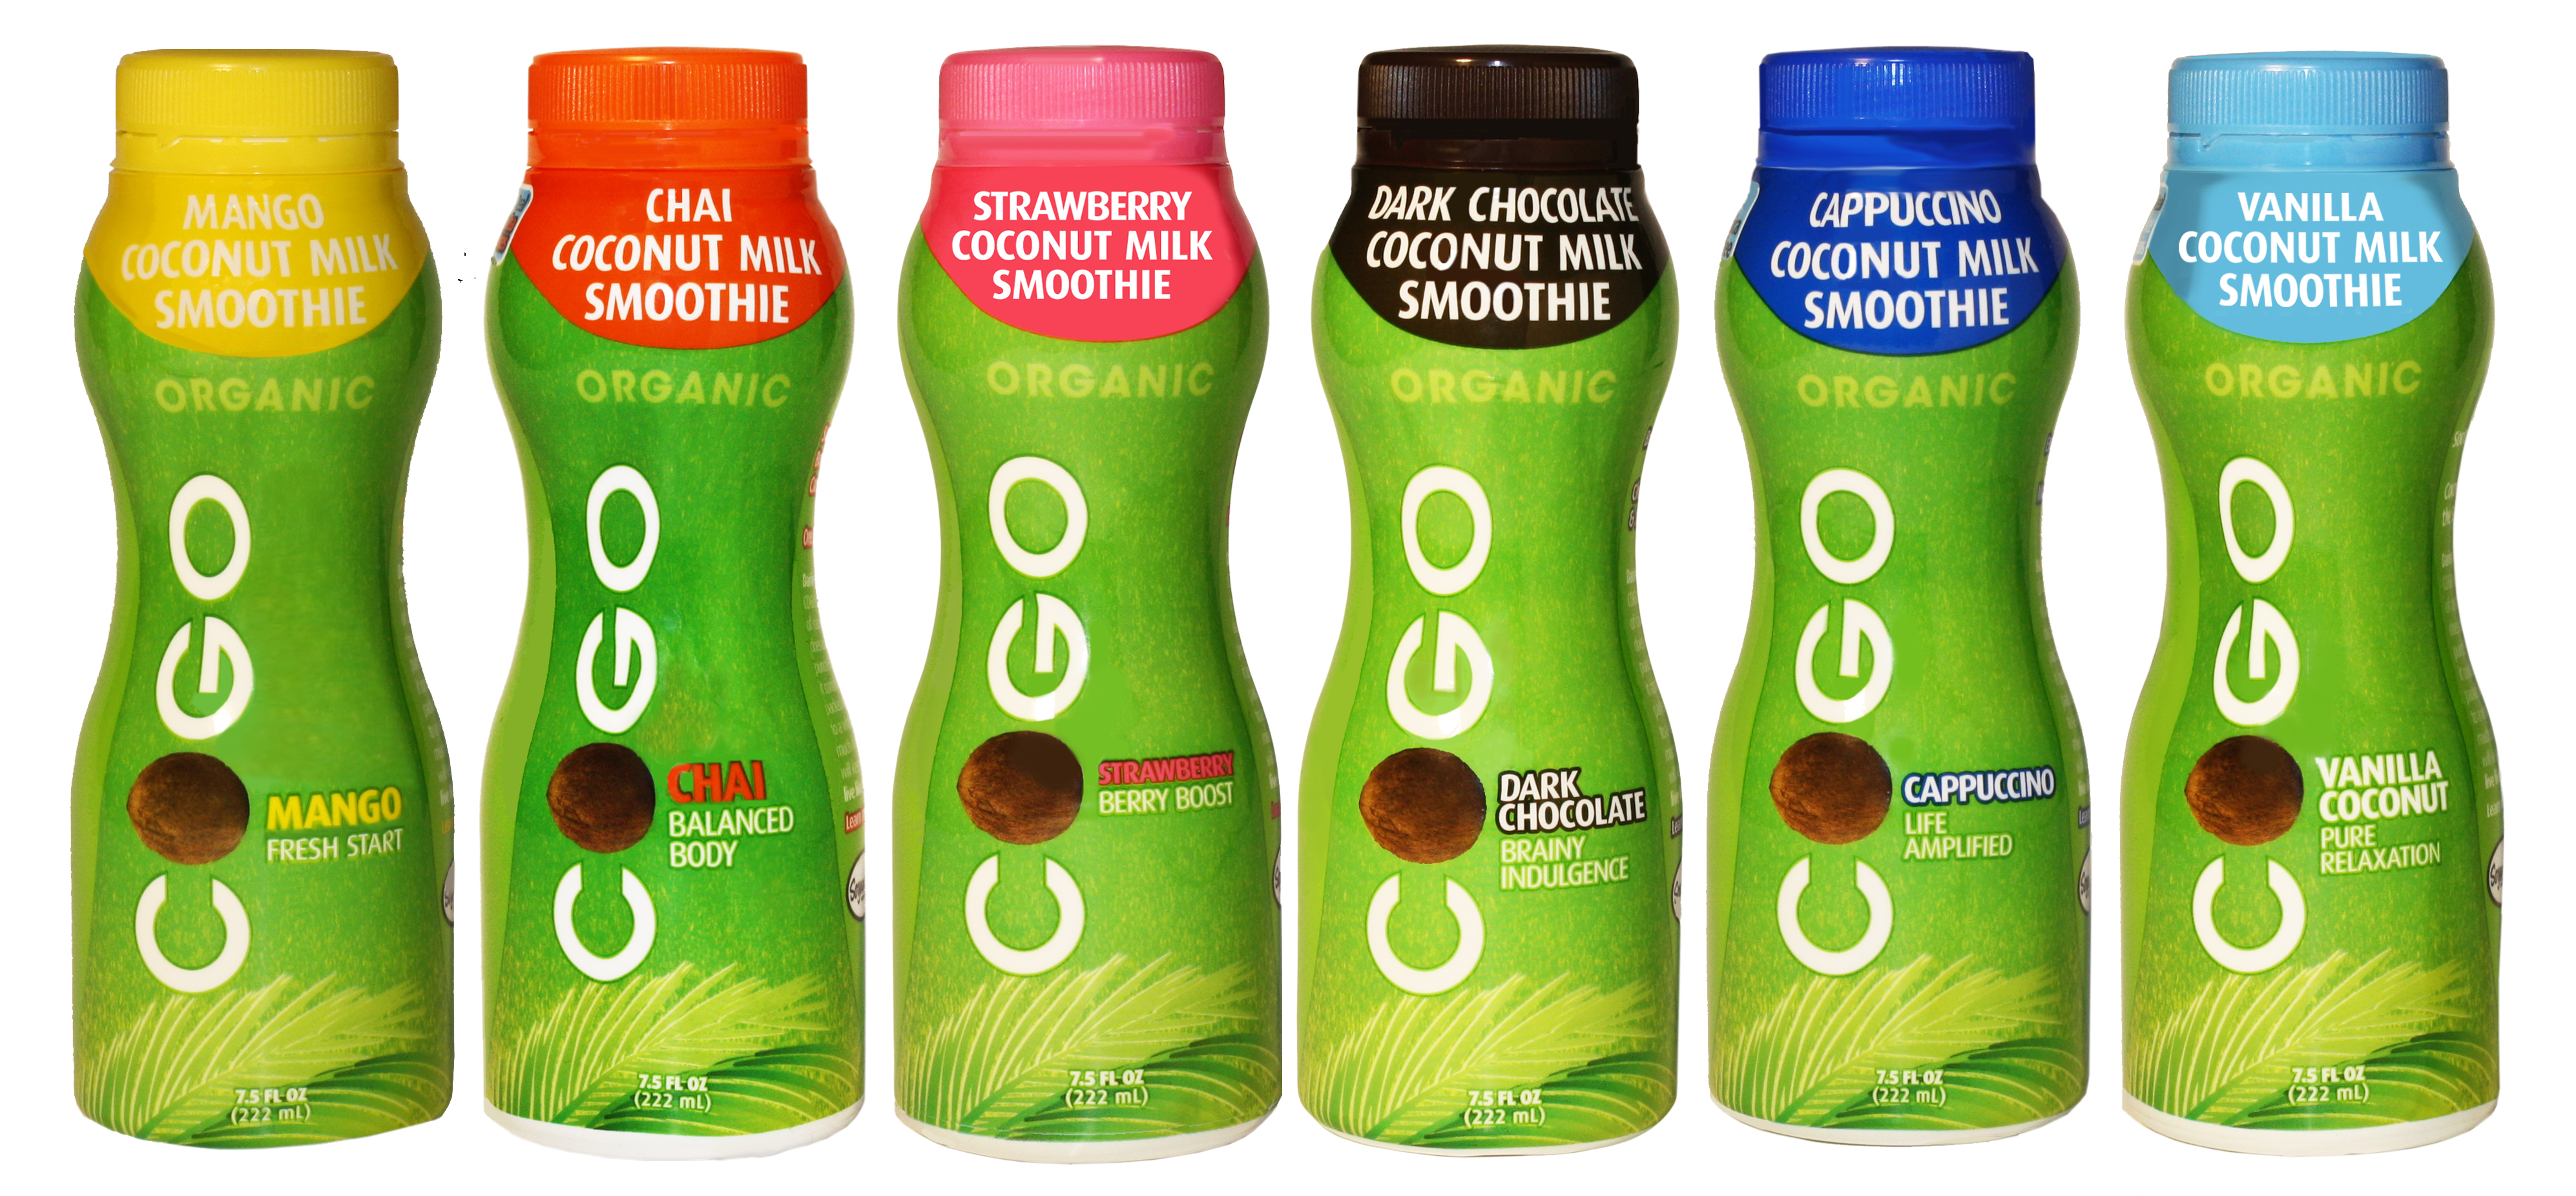 COGO Coconut Milk Smoothies